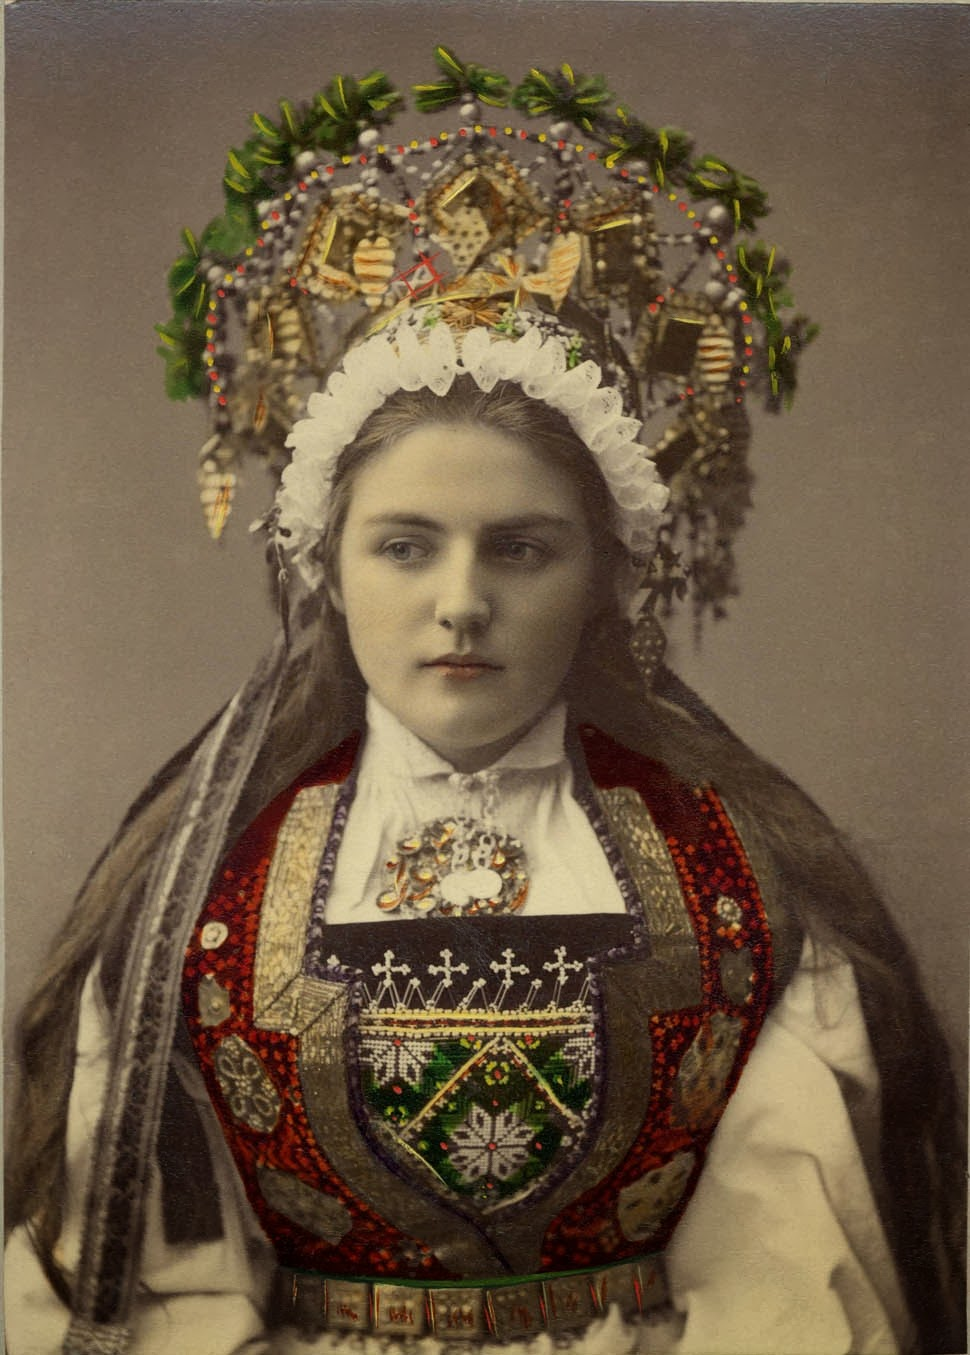 Norwegian bride, vintage photo